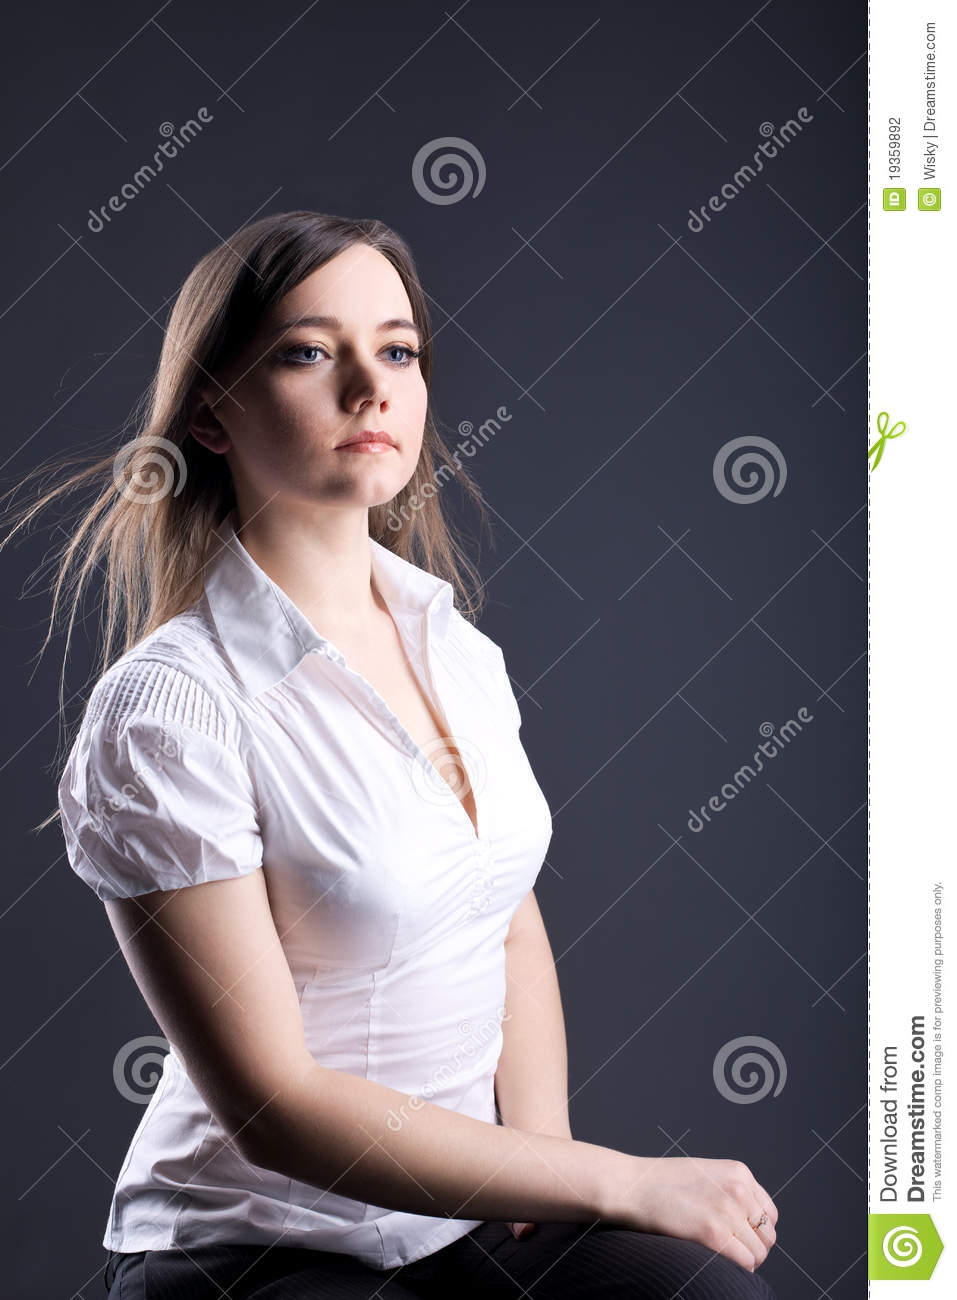 Young Proud Woman Serious Business Portrait Stock Photo Image Of